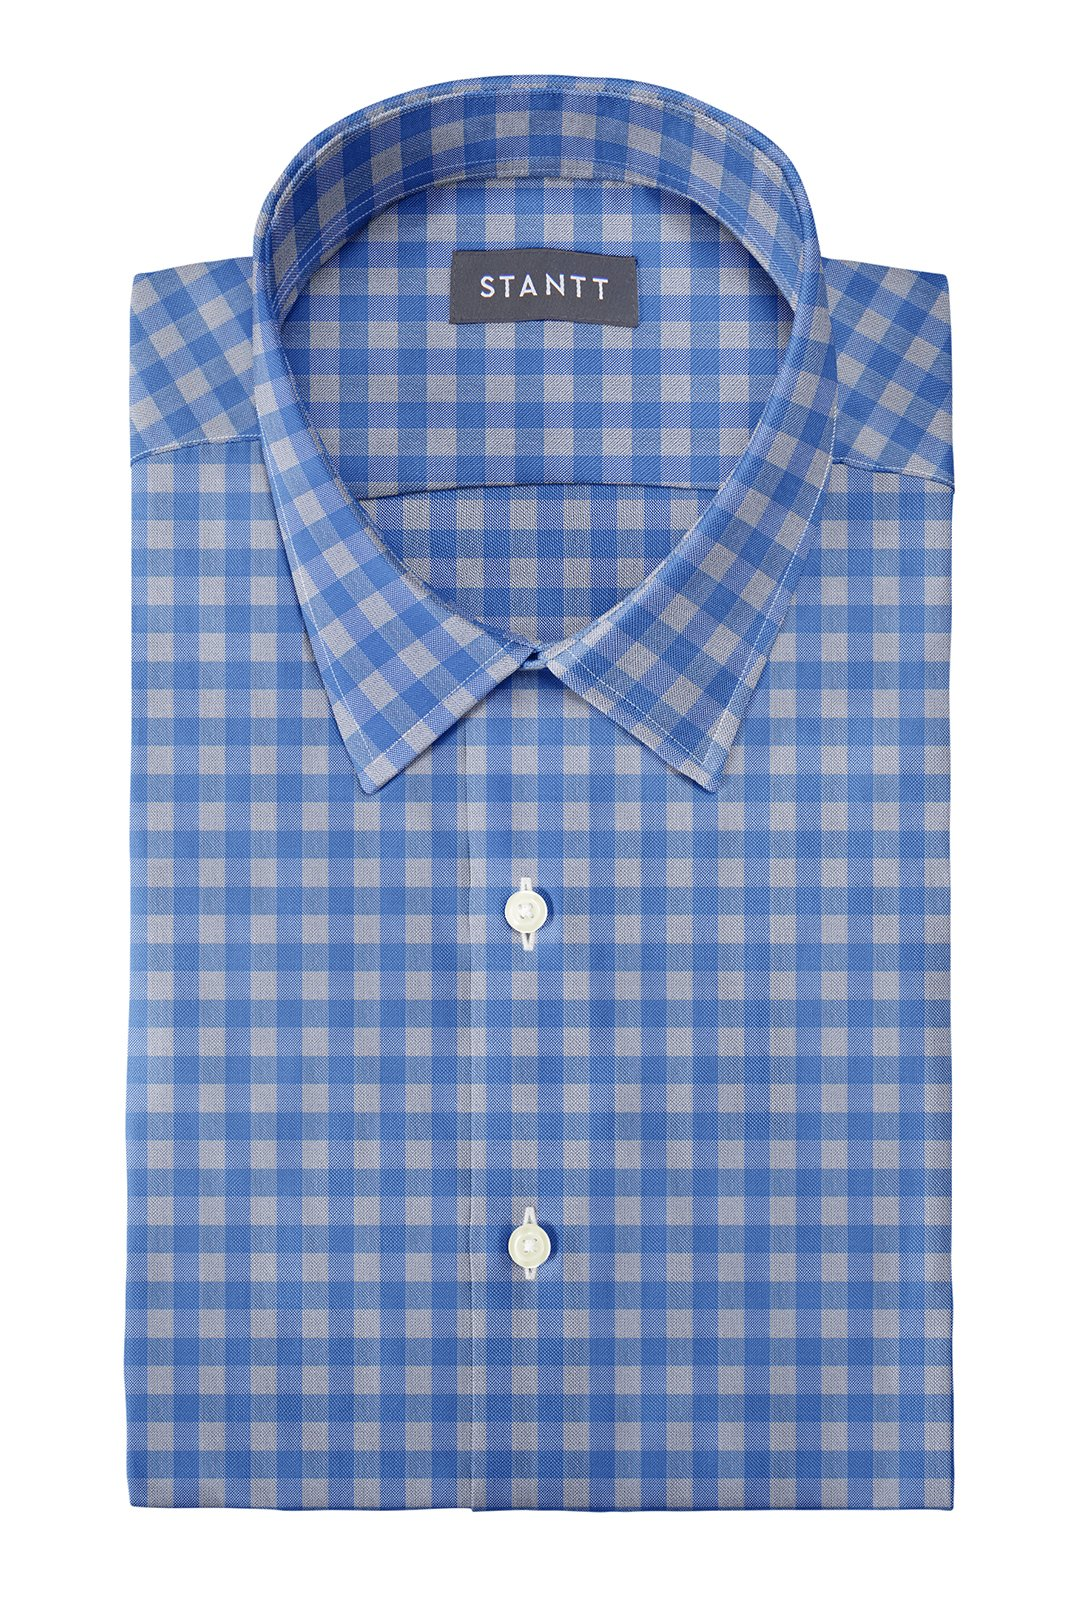 Blue and Grey Gingham: Semi-Spread Collar, Barrel Cuff